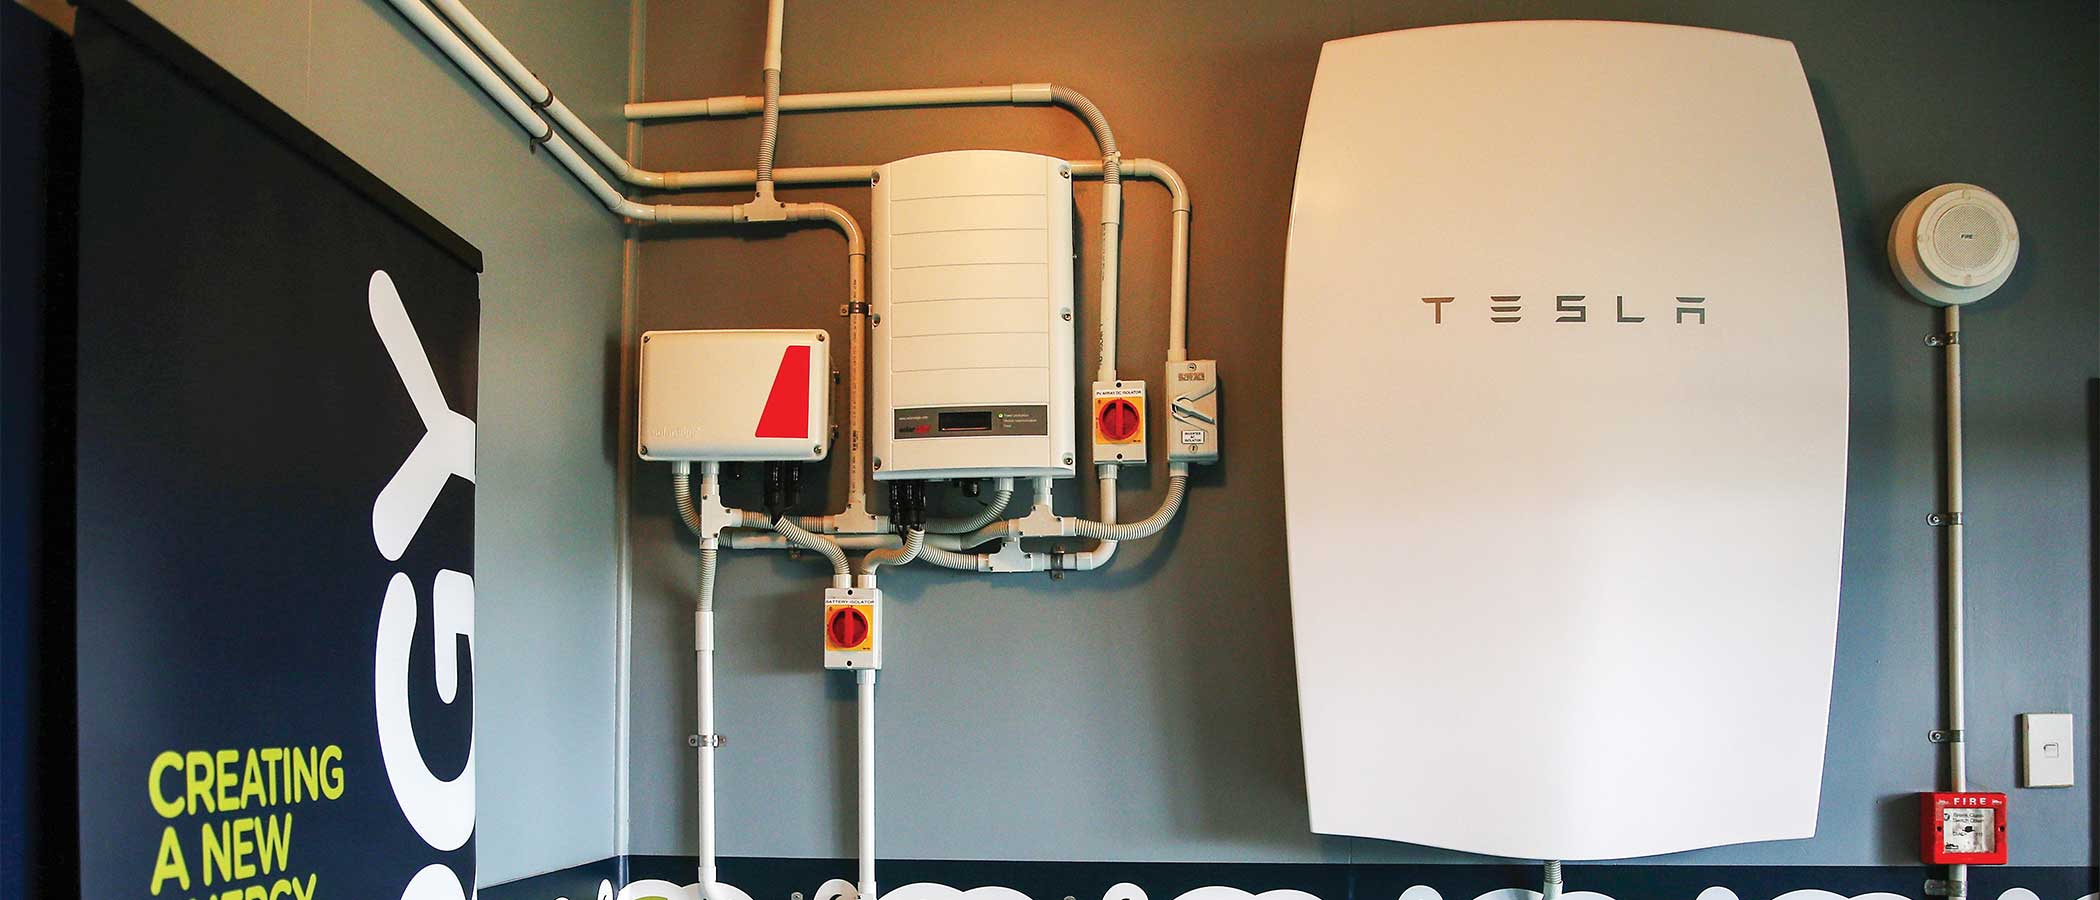 A Tesla Powerwall unit.